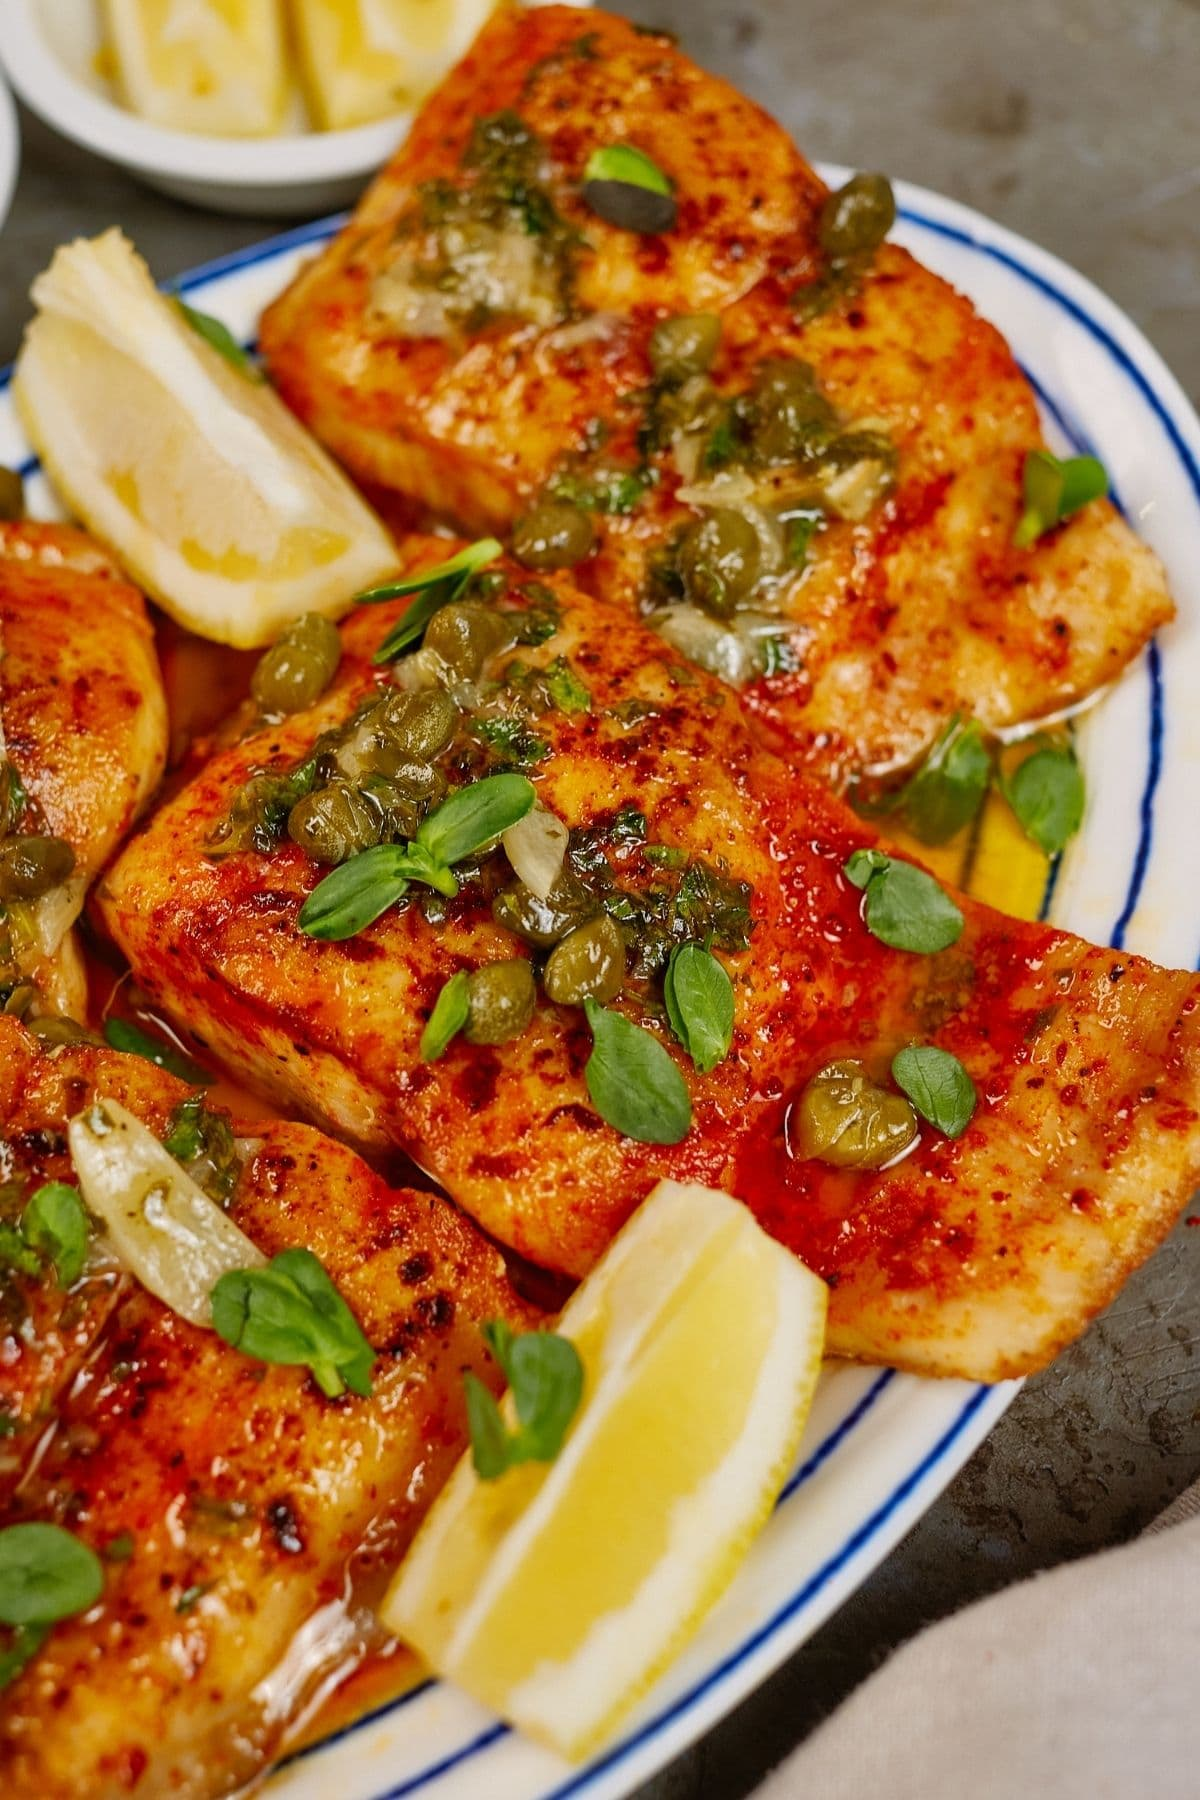 perpared pan seared halibut on plate with lemon and herbs